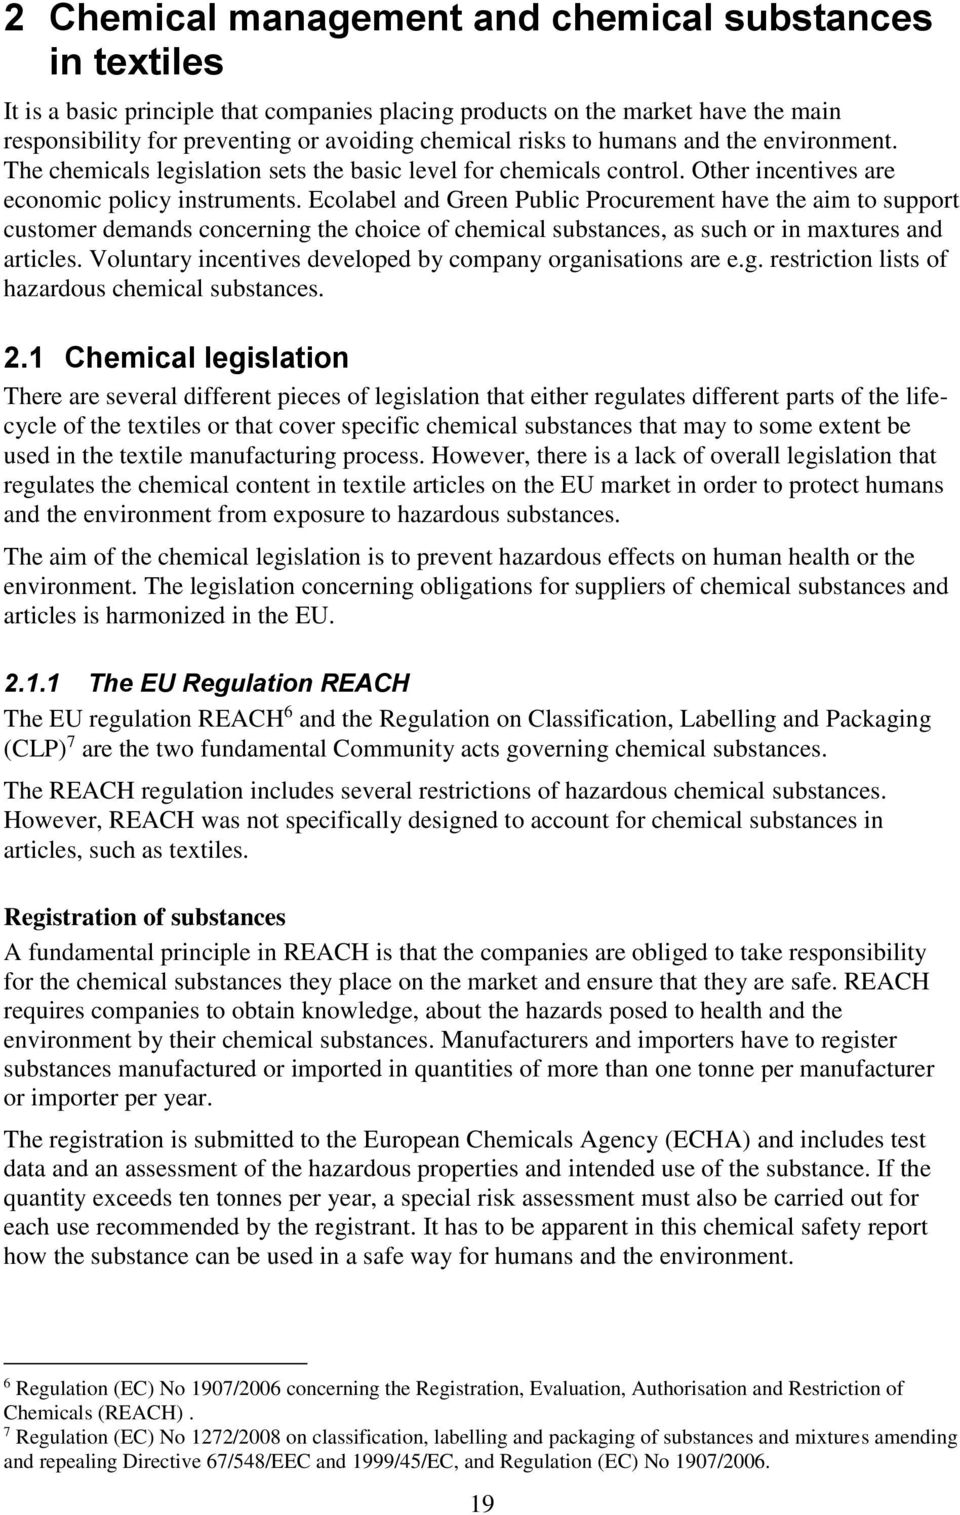 Ecolabel and Green Public Procurement have the aim to support customer demands concerning the choice of chemical substances, as such or in maxtures and articles.